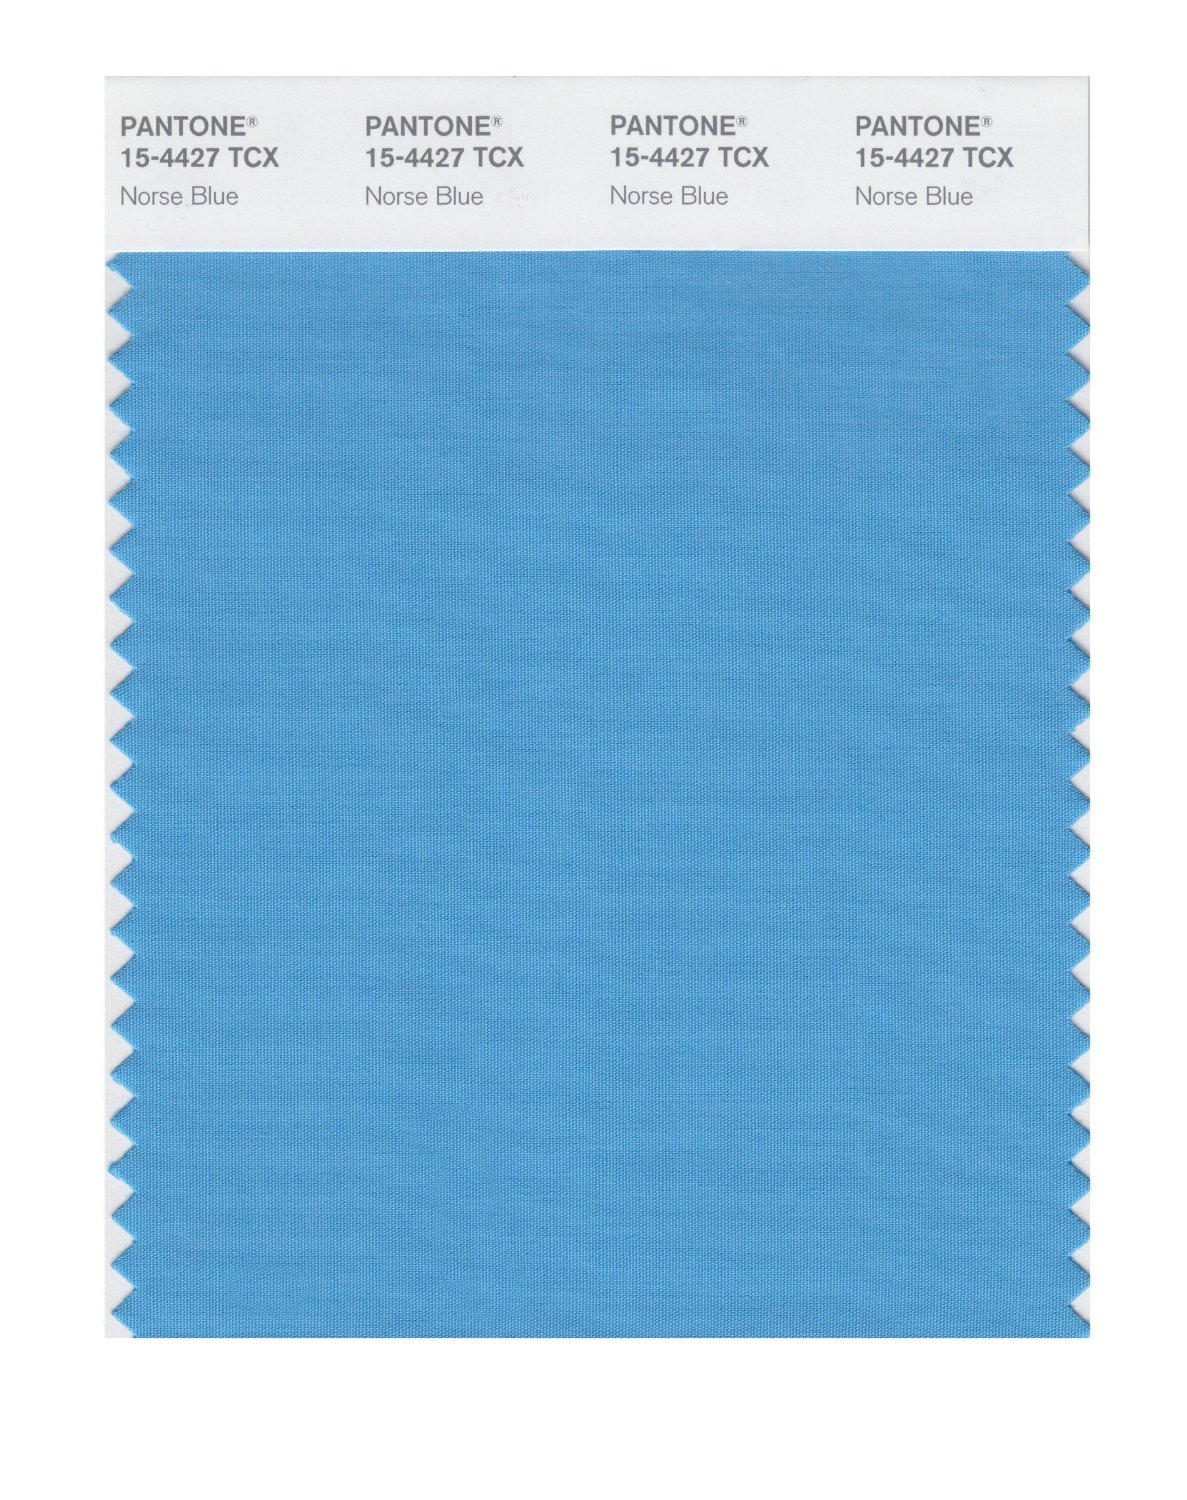 Pantone Smart Swatch 15-4427 Norse Blue